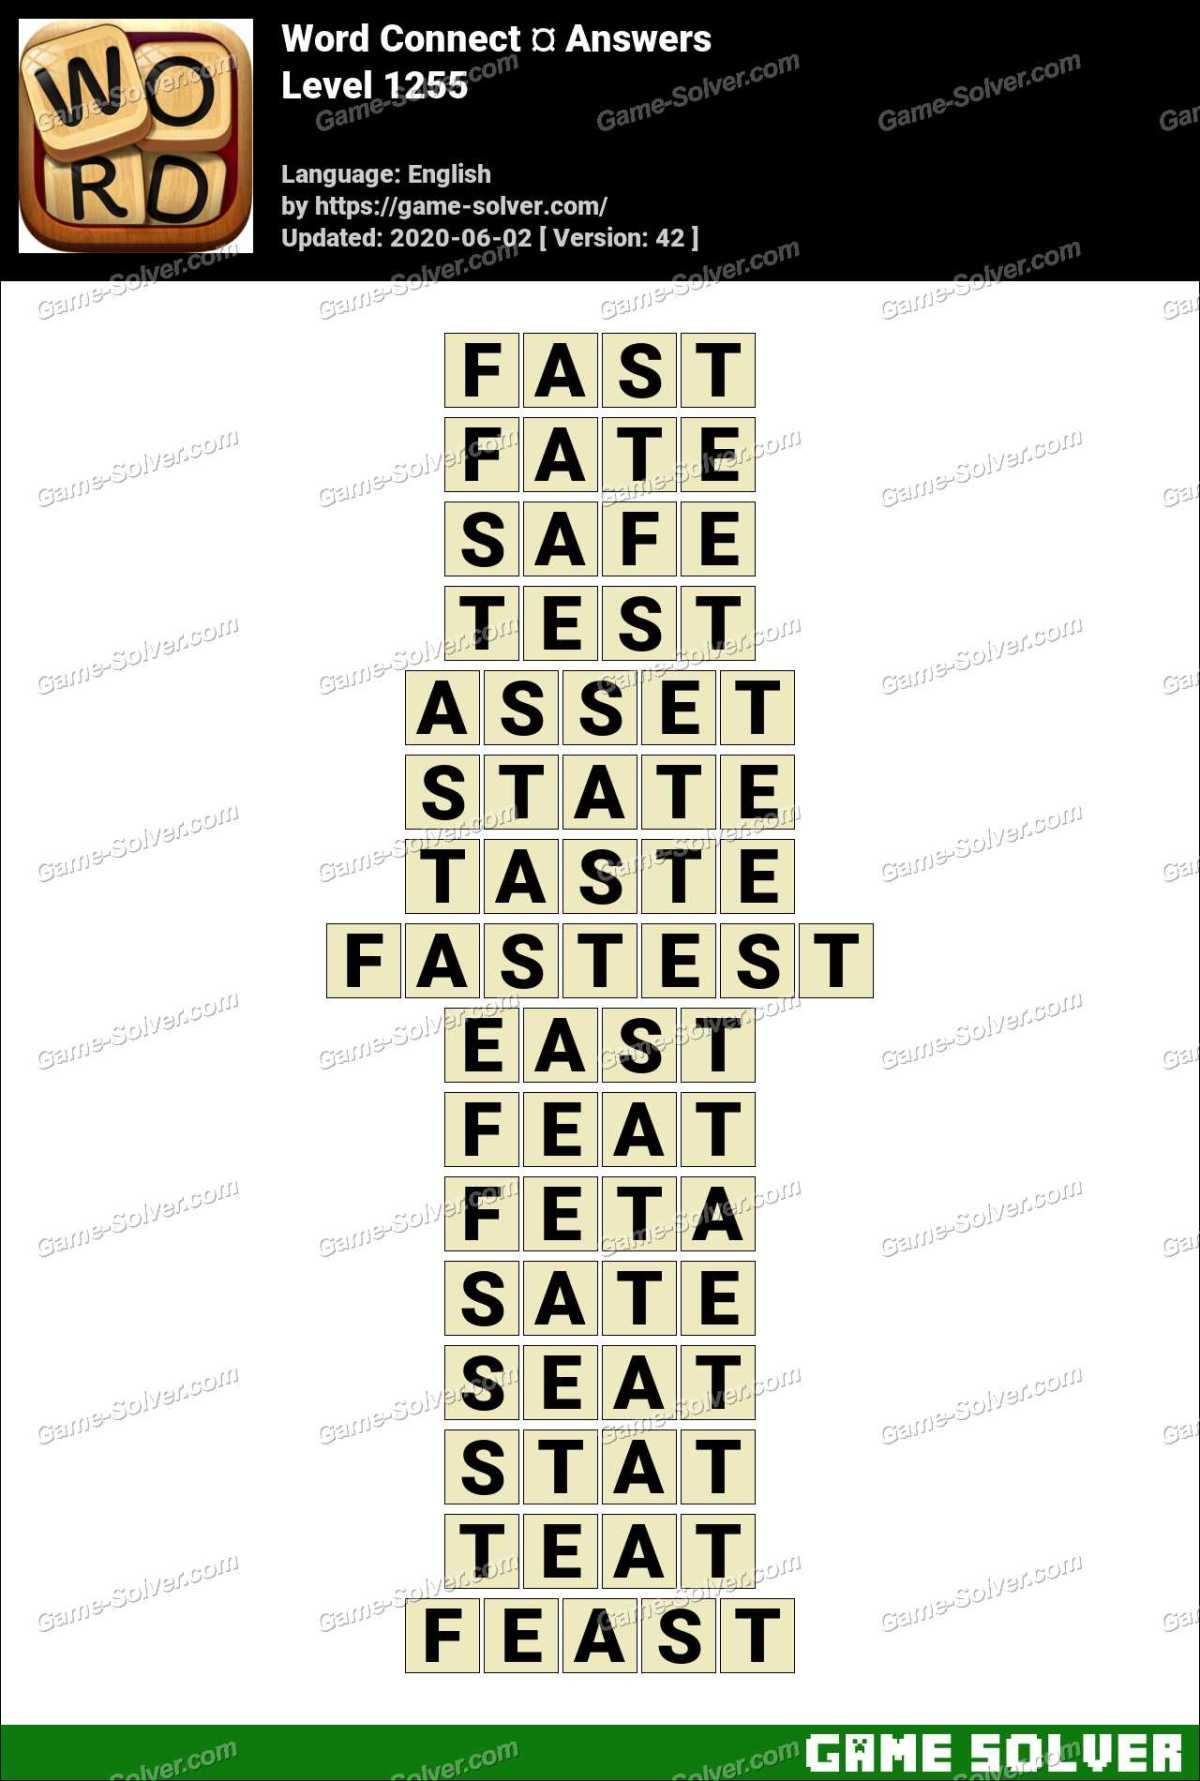 Word Connect Level 1255 Answers